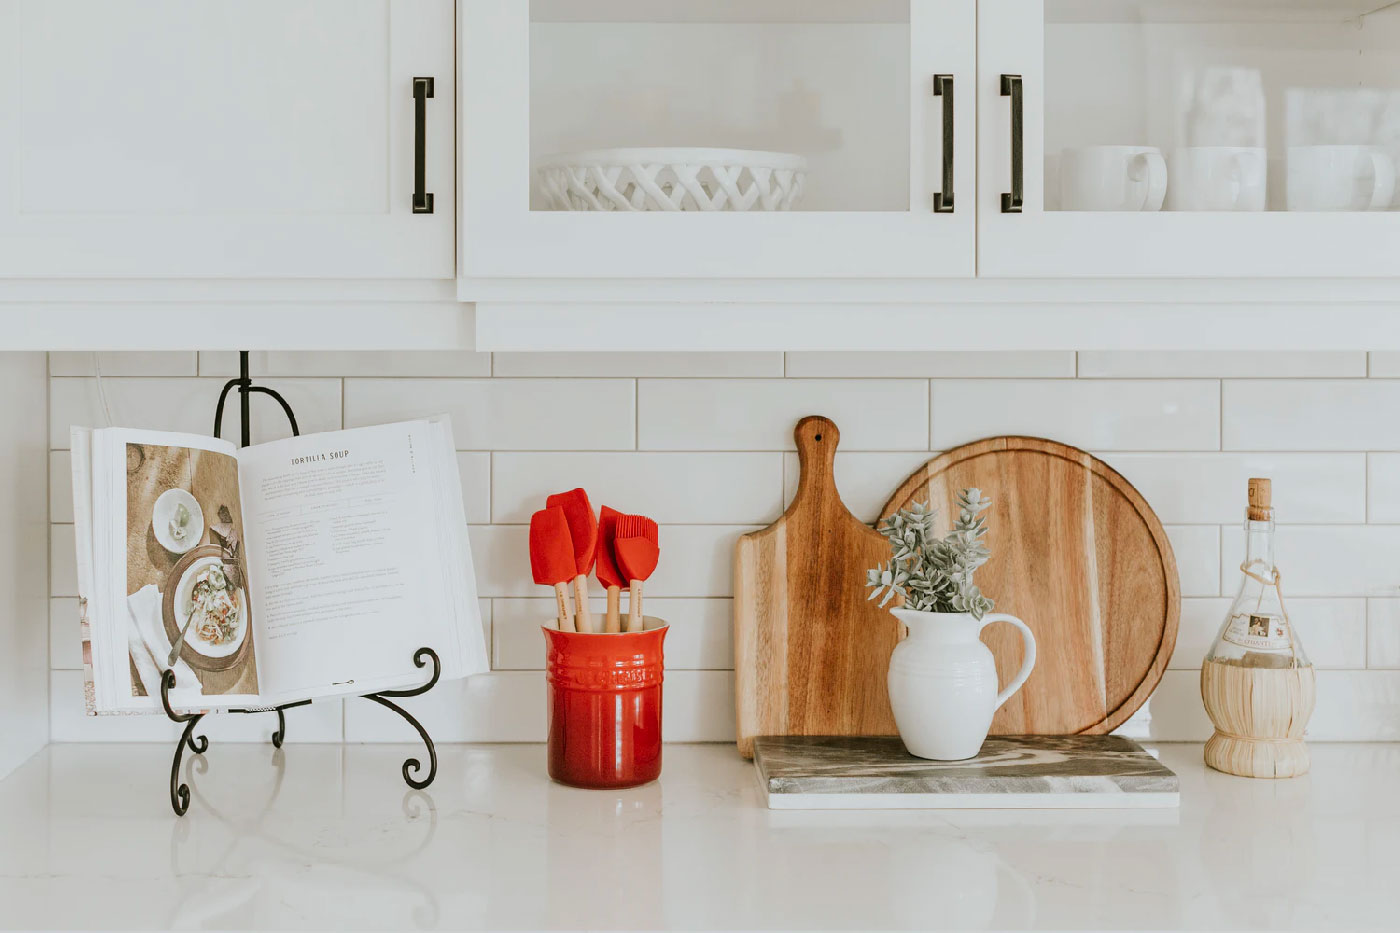 15 Simple Kitchen Counter Organization Tips To Create A Space You Love